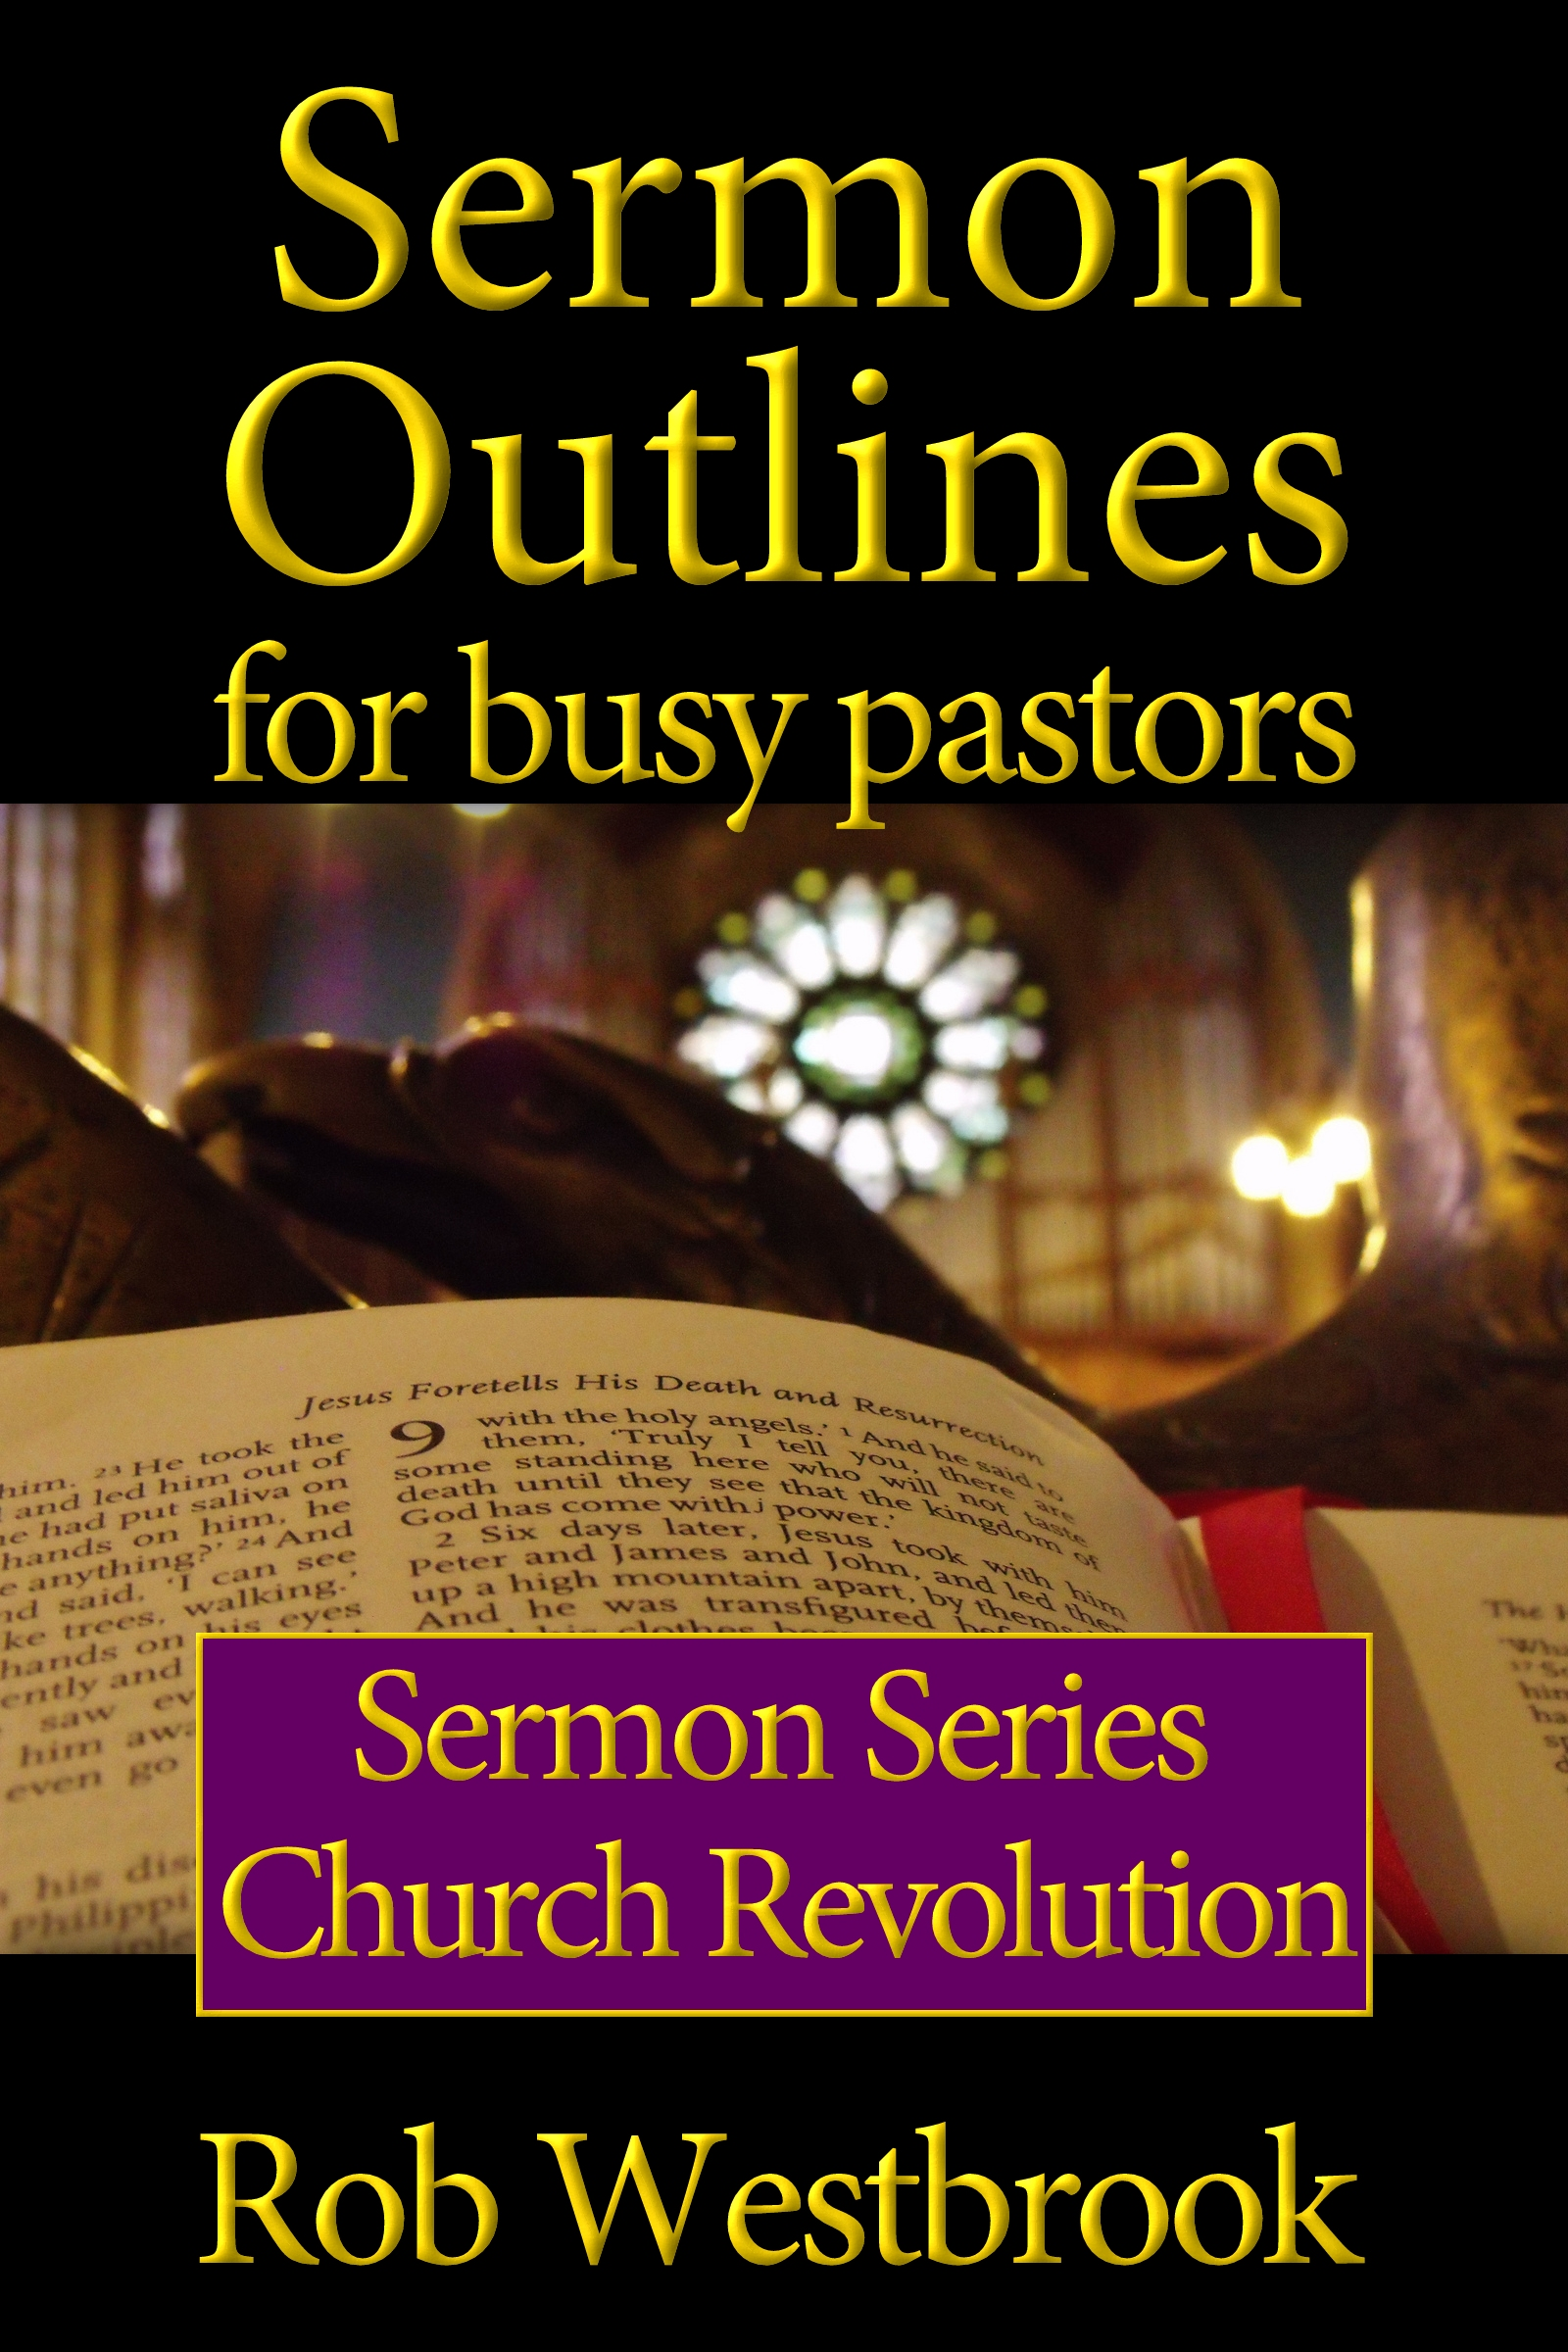 Sermon For The Feast Of St Michael All Angels: Sermon Outlines For Busy Pastors: Church